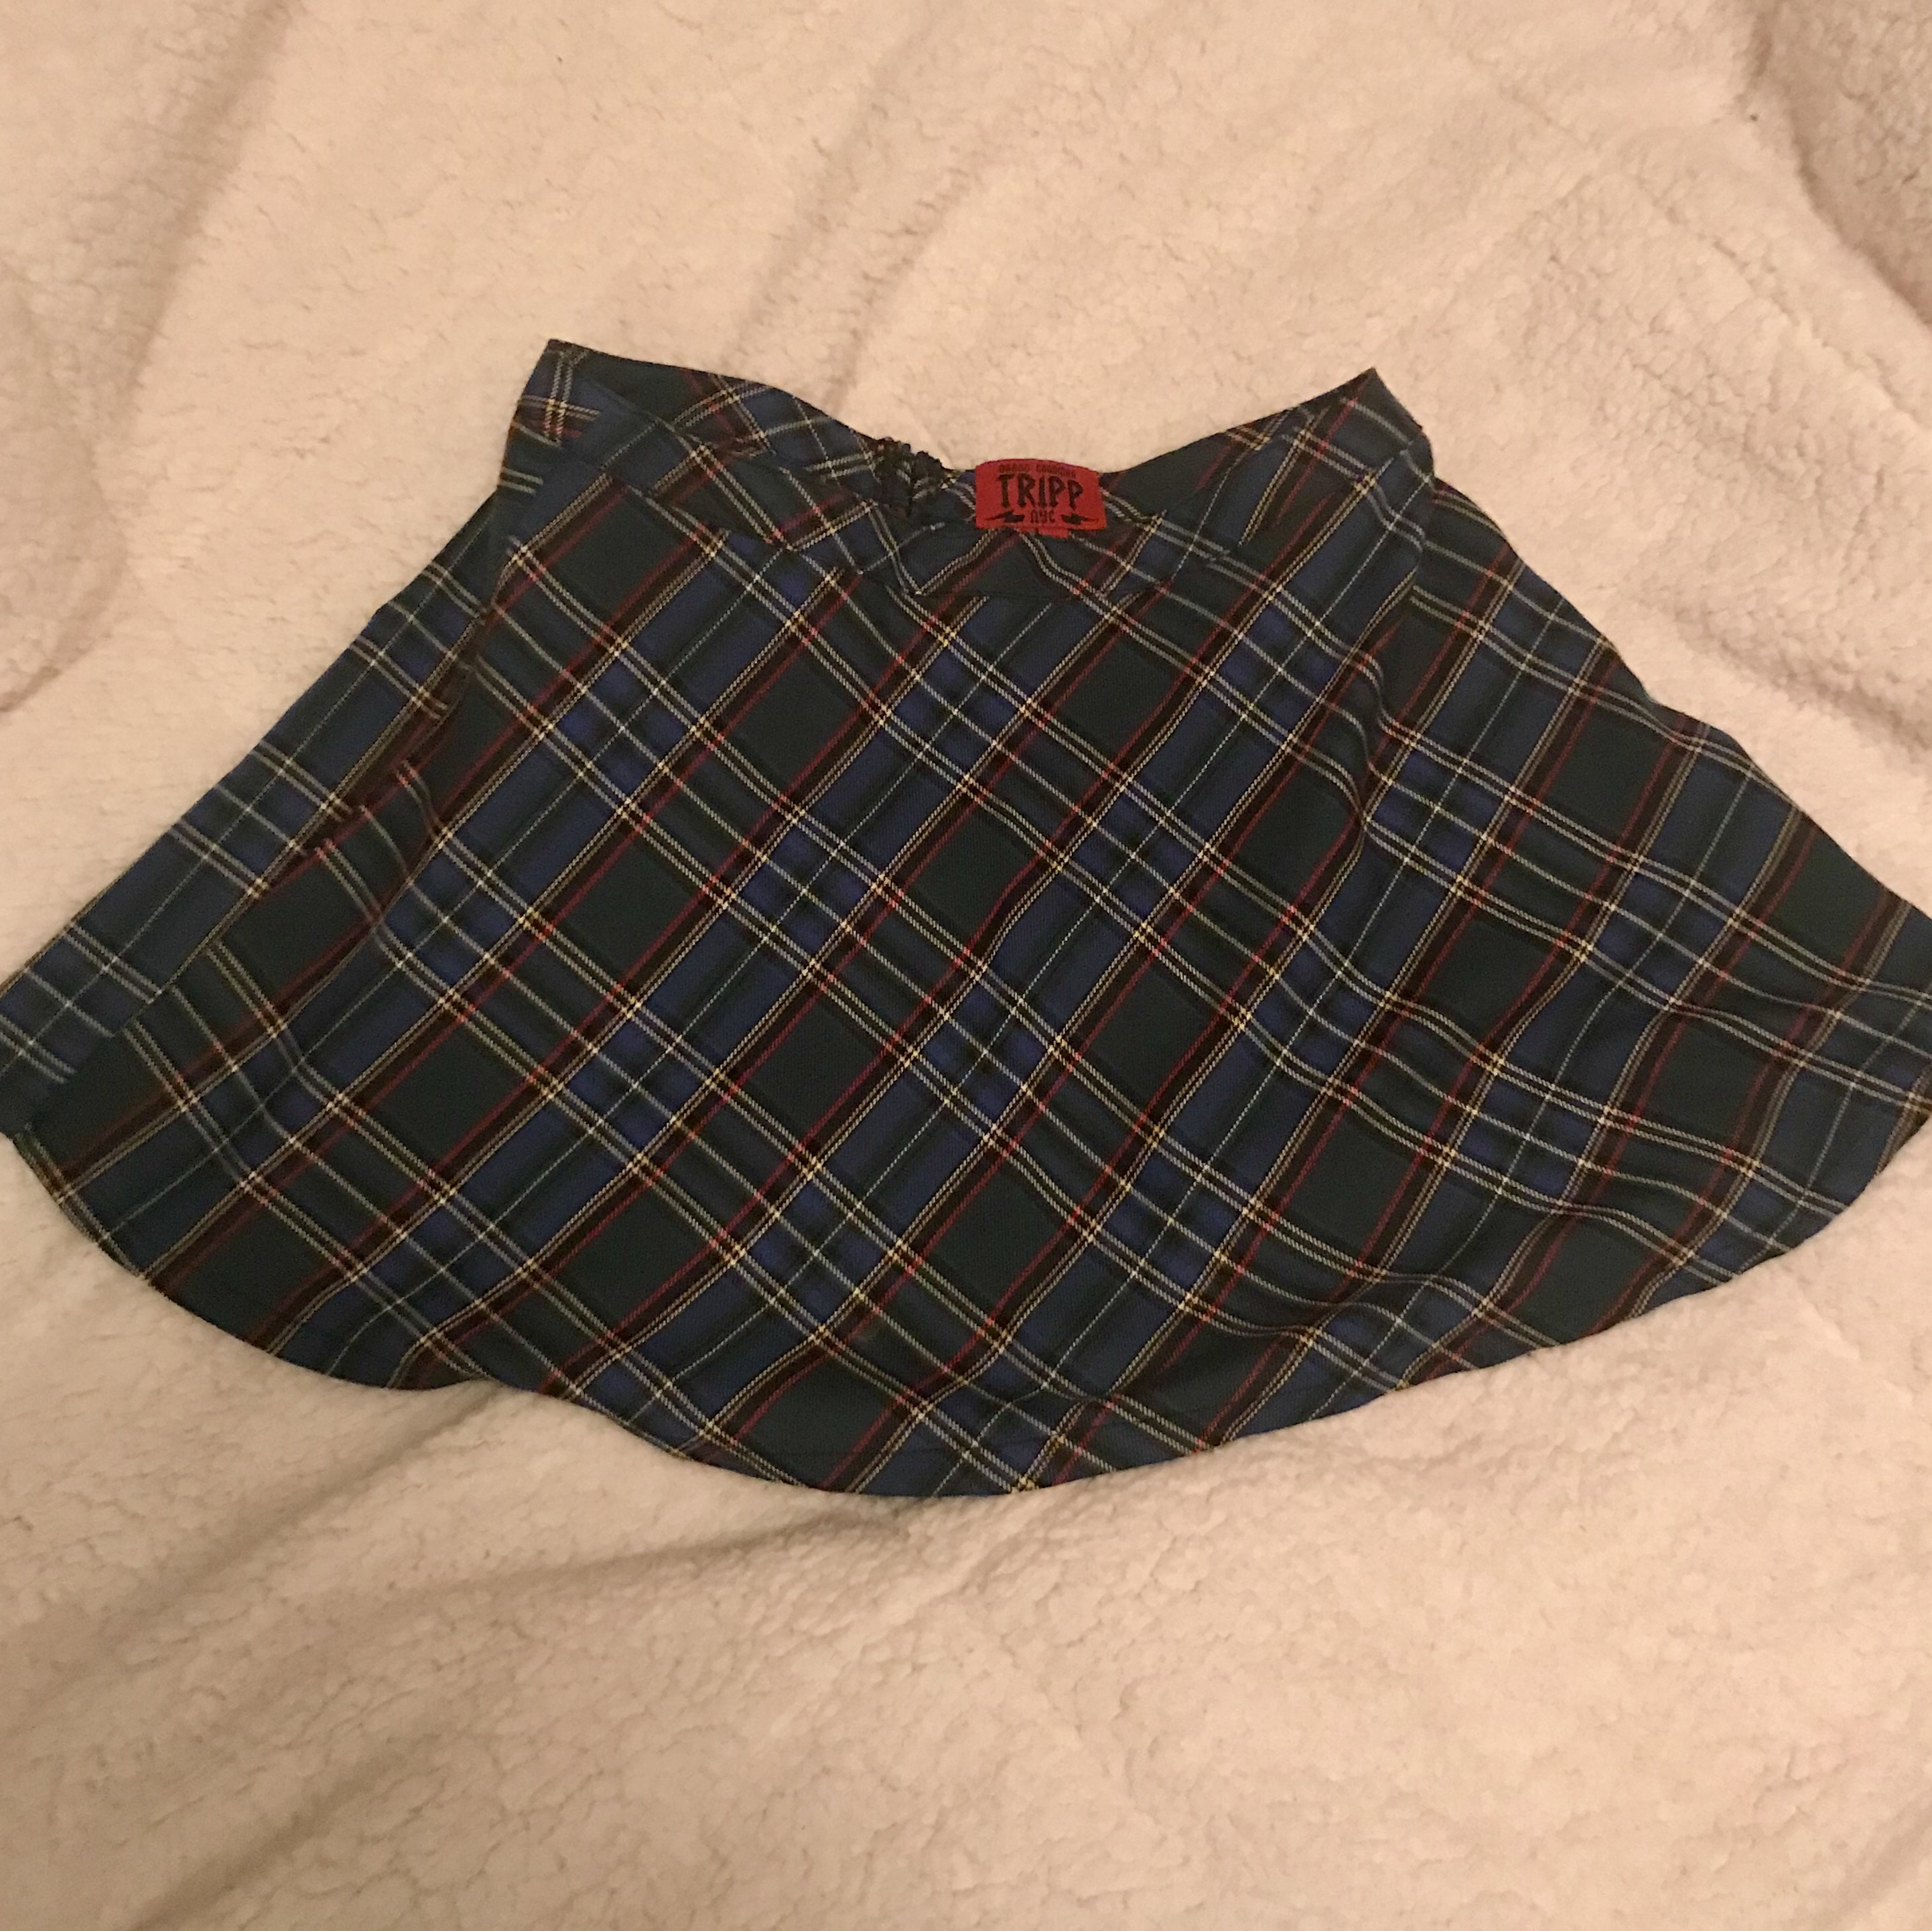 a9778d29213 Tripp NYC Plaid Mini Skirt. Good condition. Zip in back. - Depop